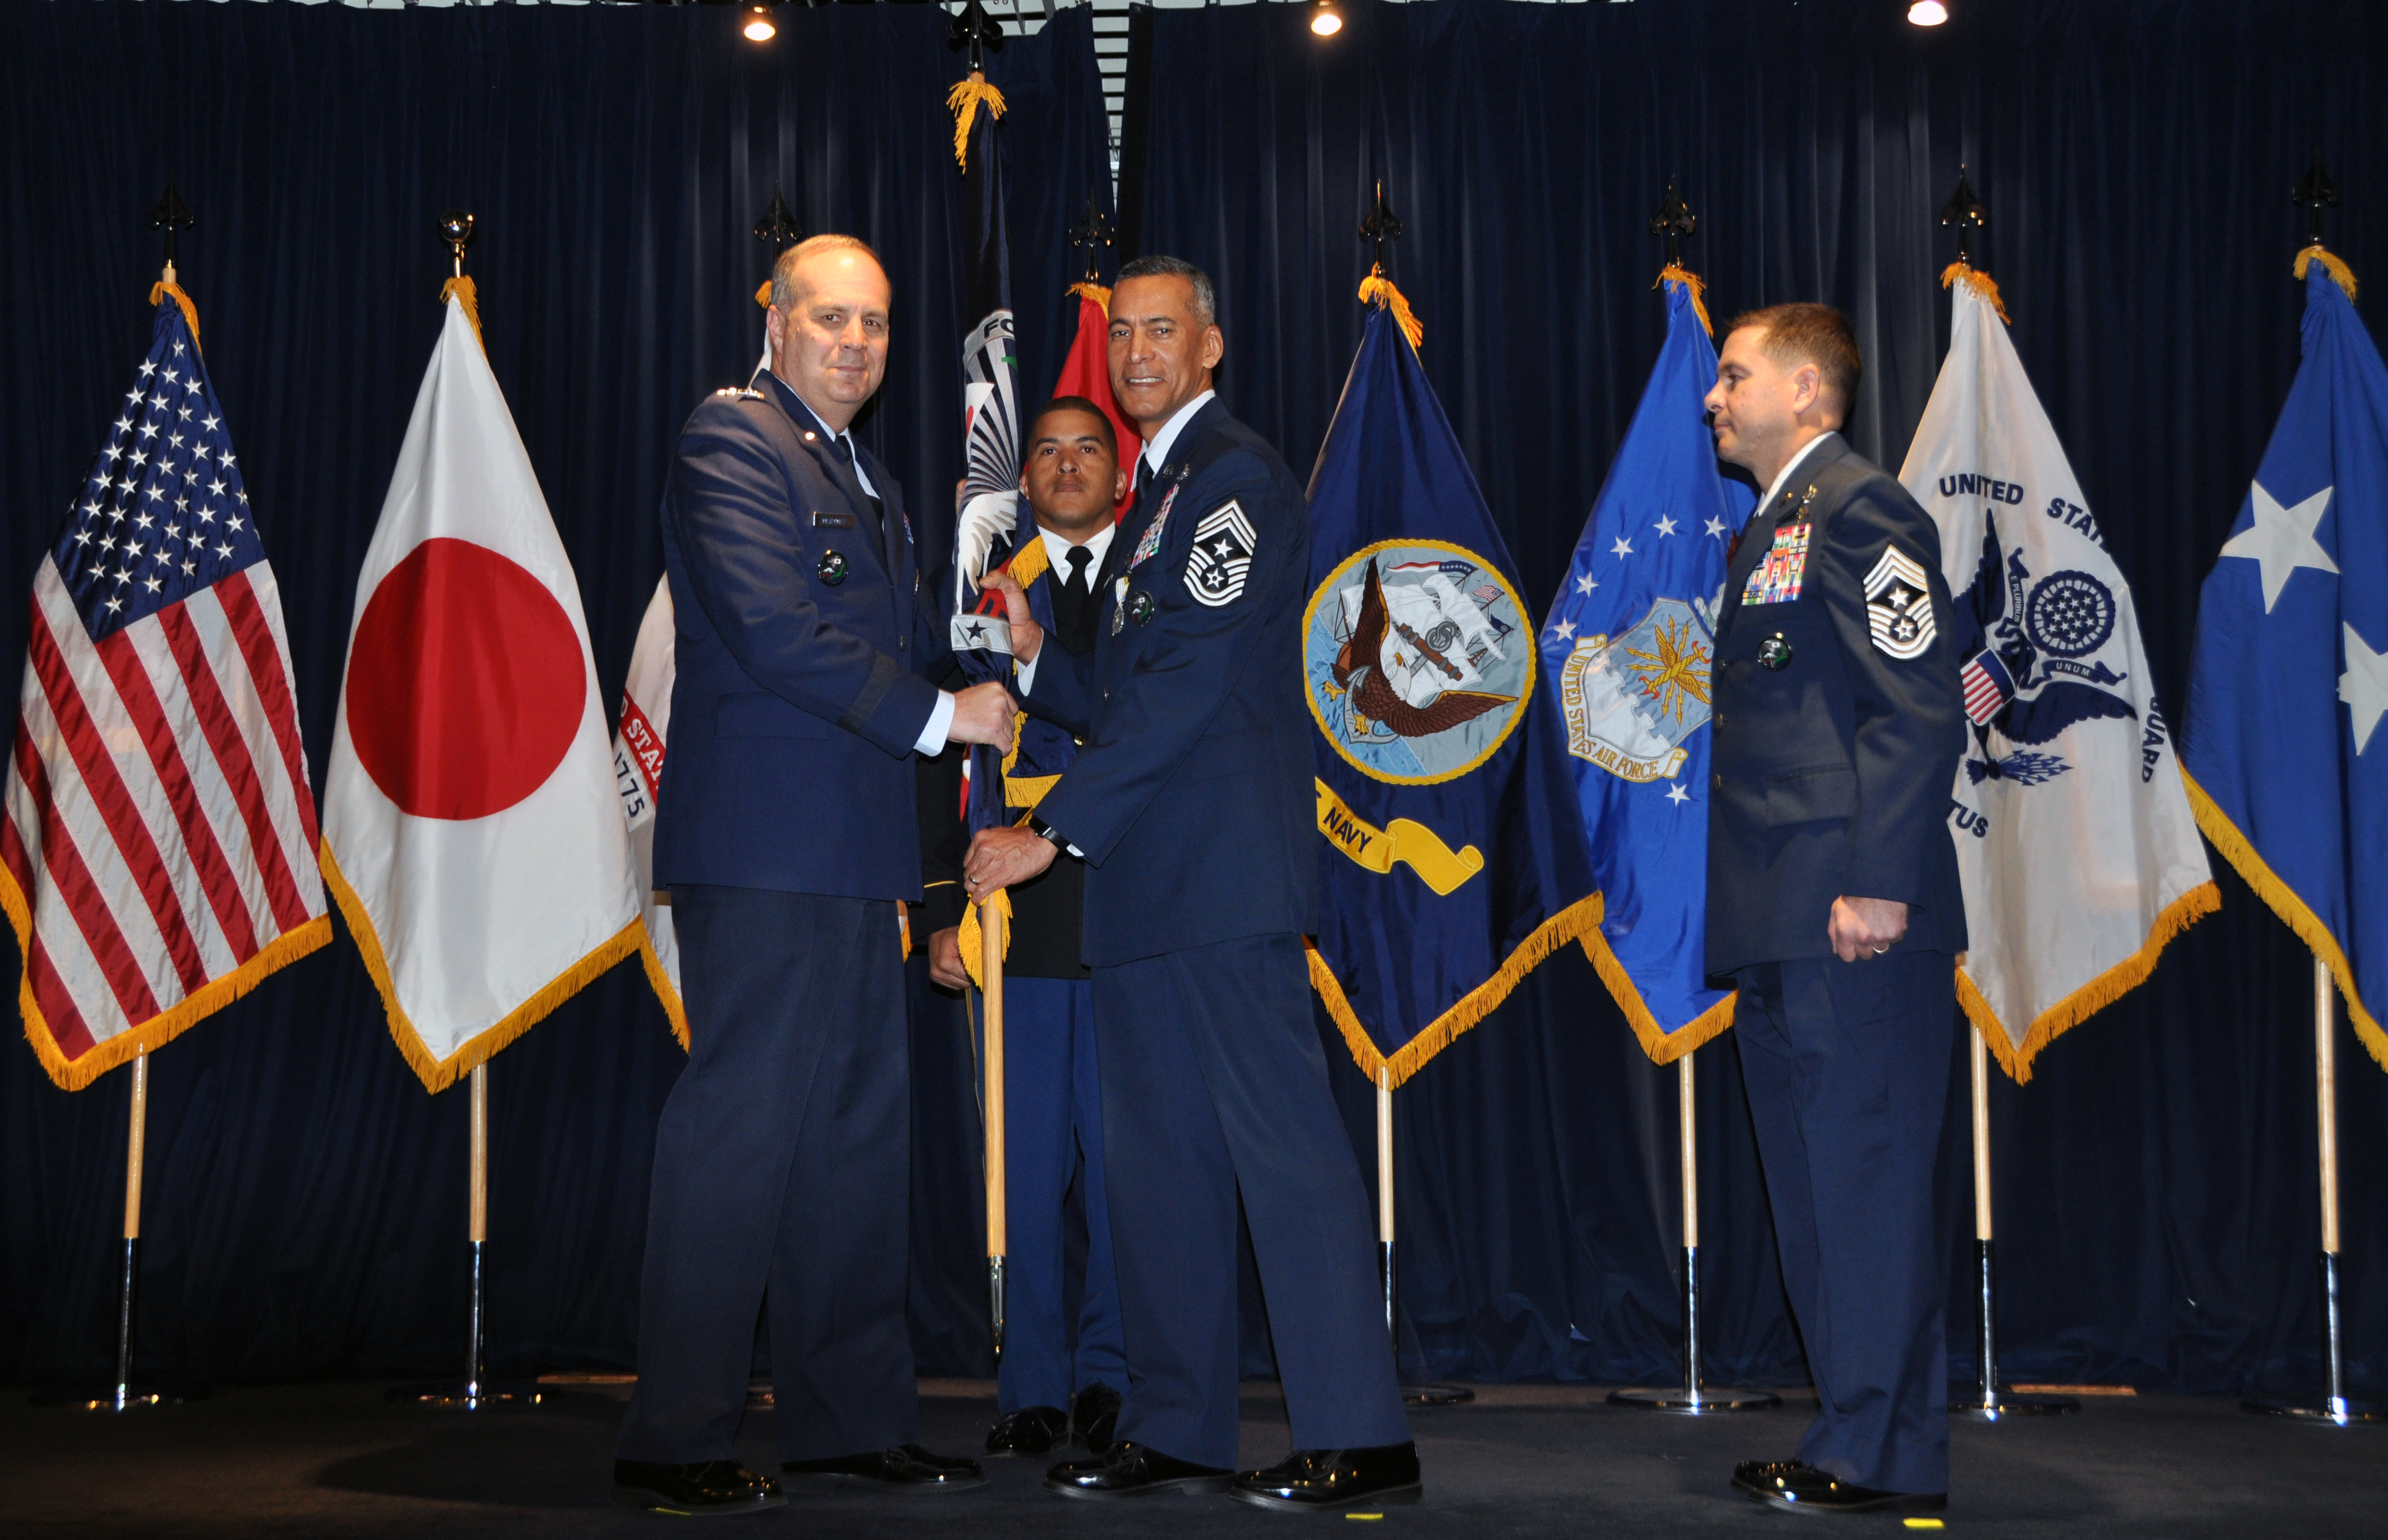 U.S. Forces Japan and 5th Air Force receive two new senior enlisted leaders